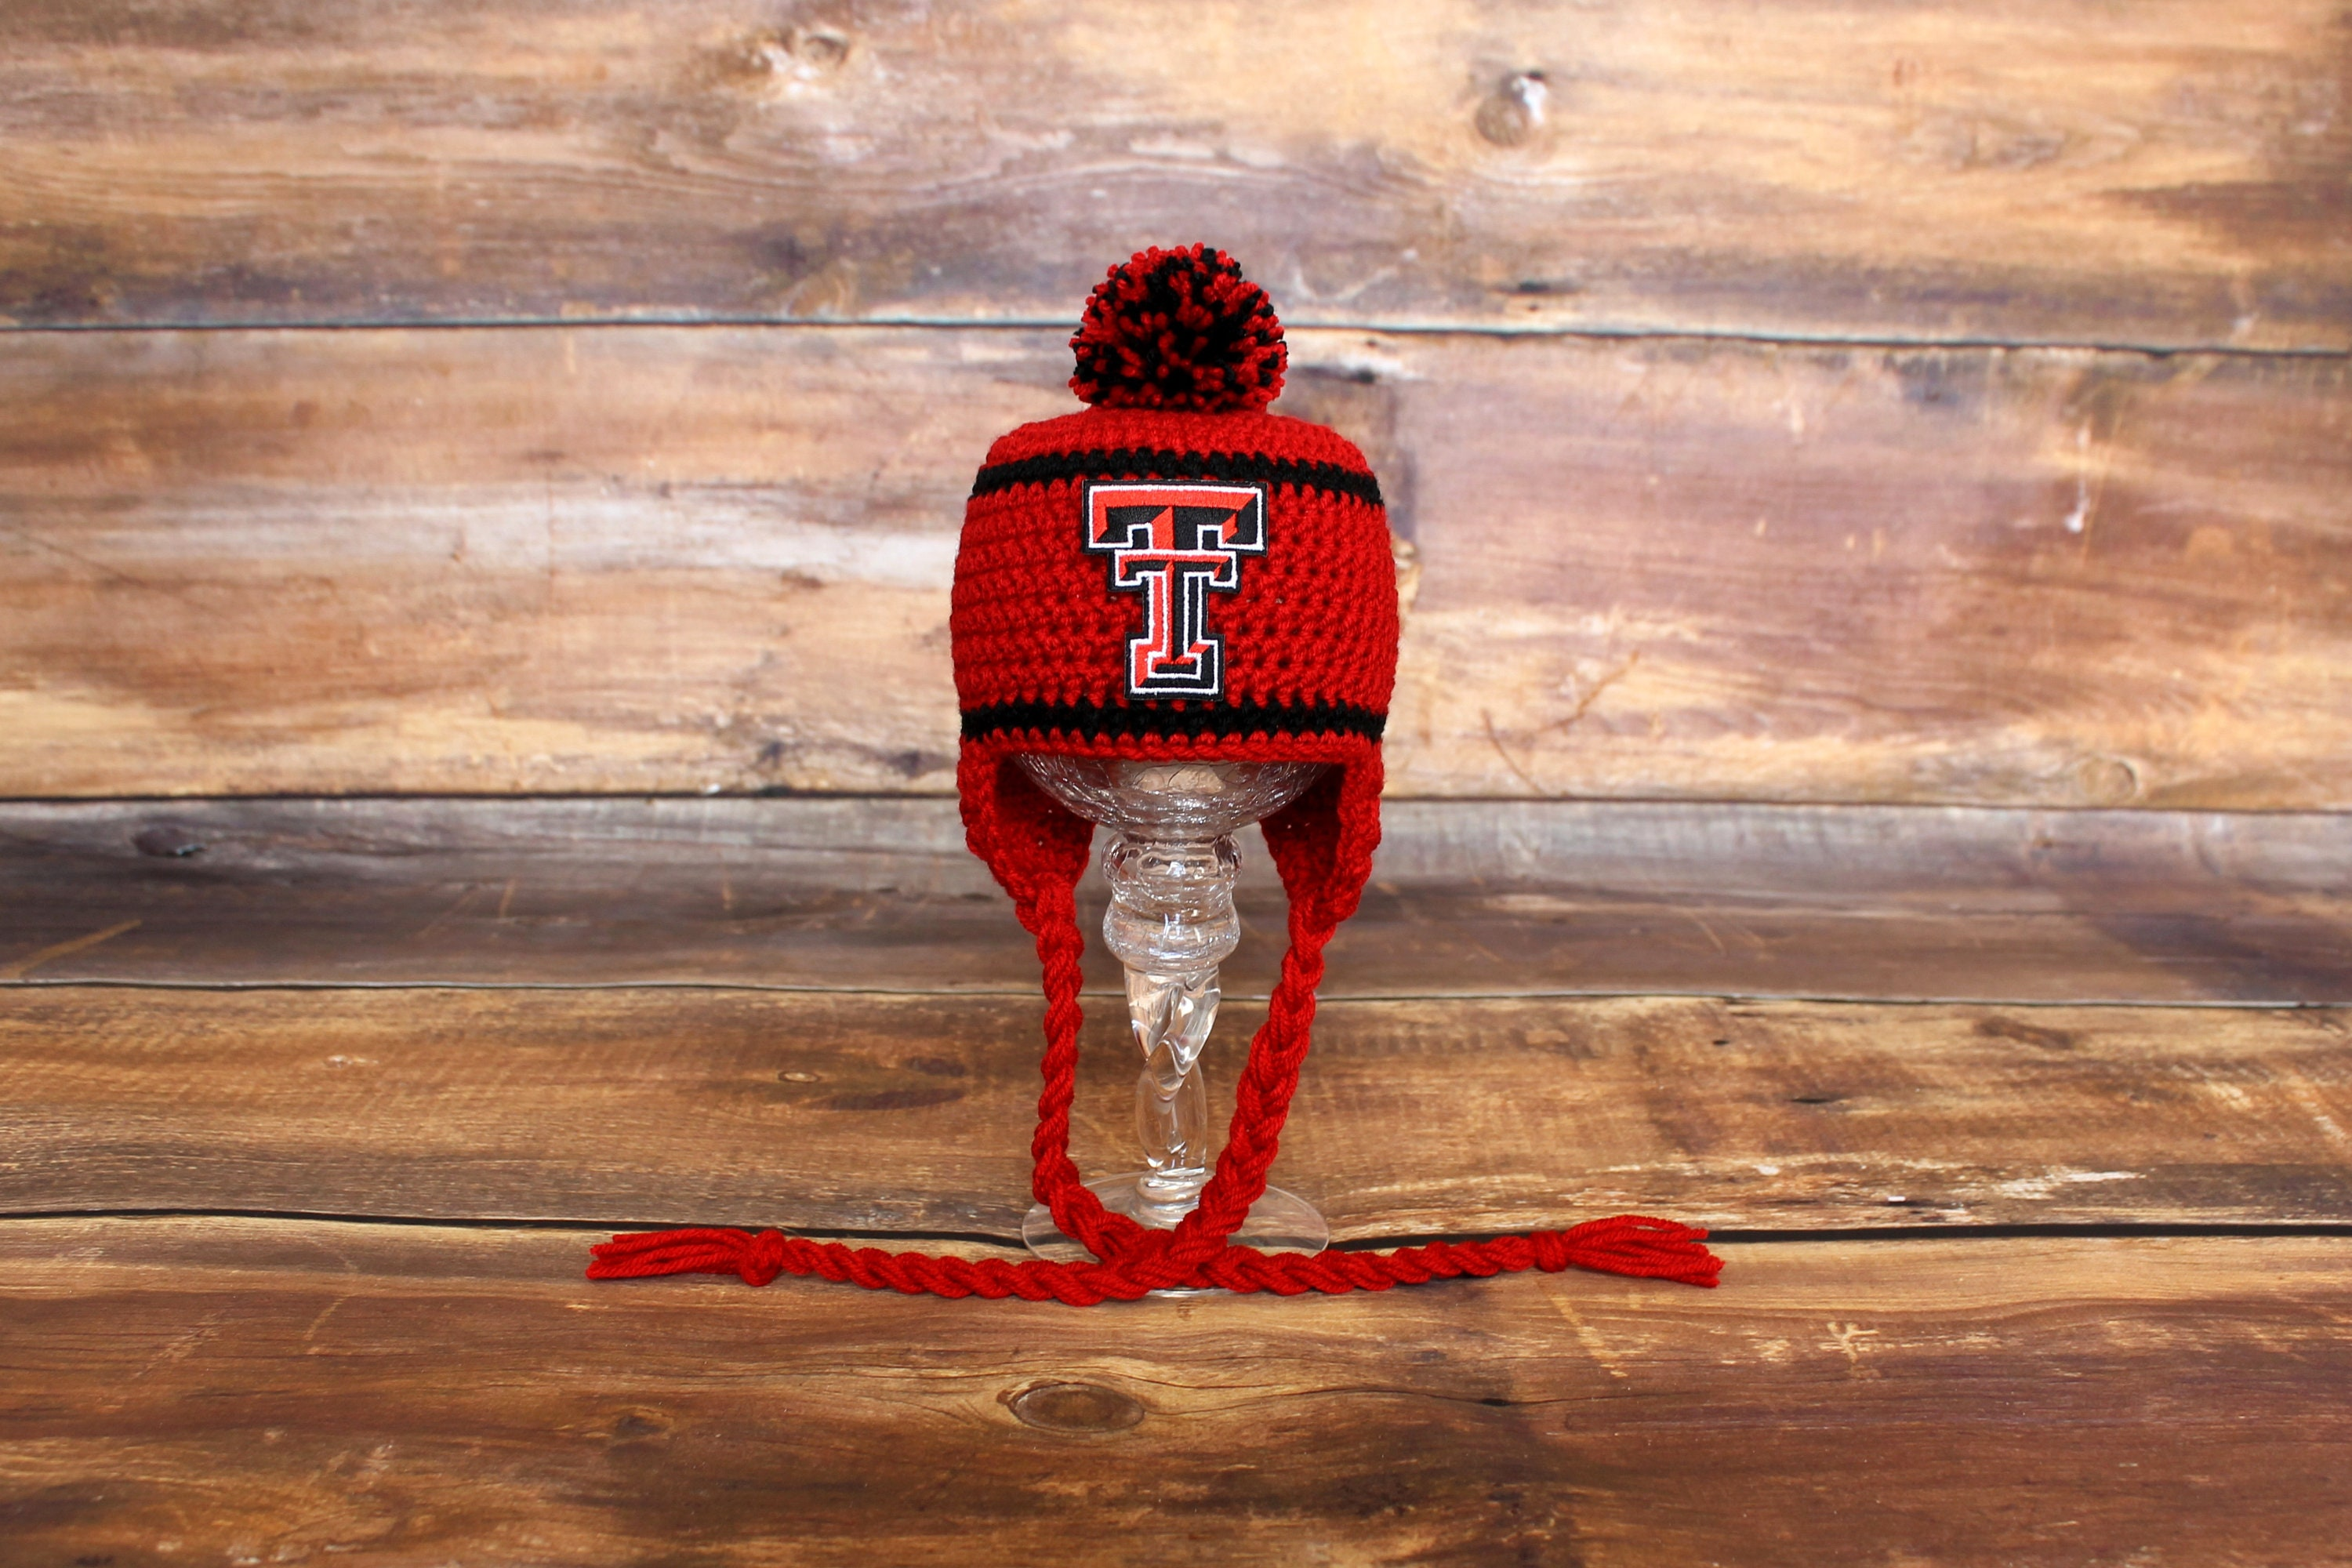 6c8f47e5 Texas Tech Red Raiders Hat - Newborn baby toddler infant child TT Red  Raiders knit hat photo prop coming going home outfit stocking hat cap